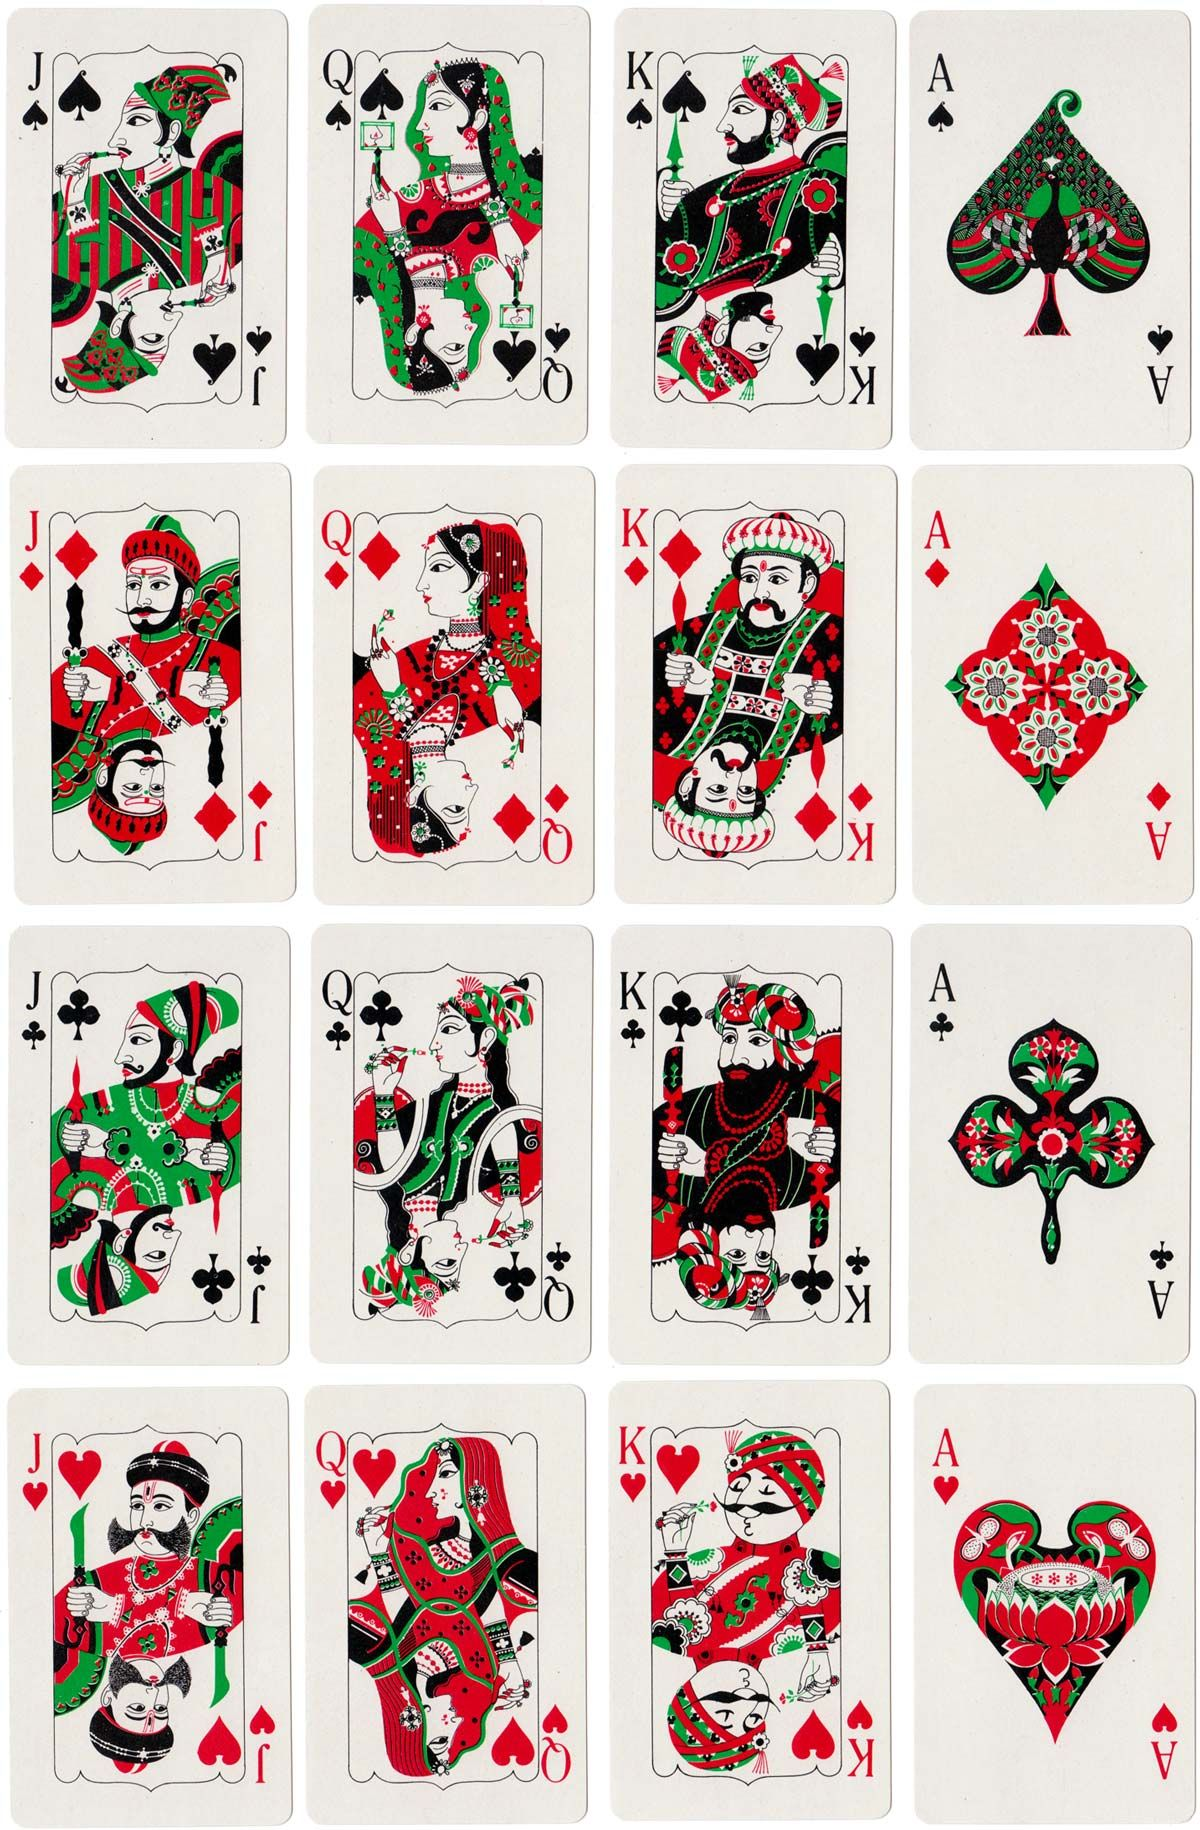 'Air India' playing cards, made in India by Playwell